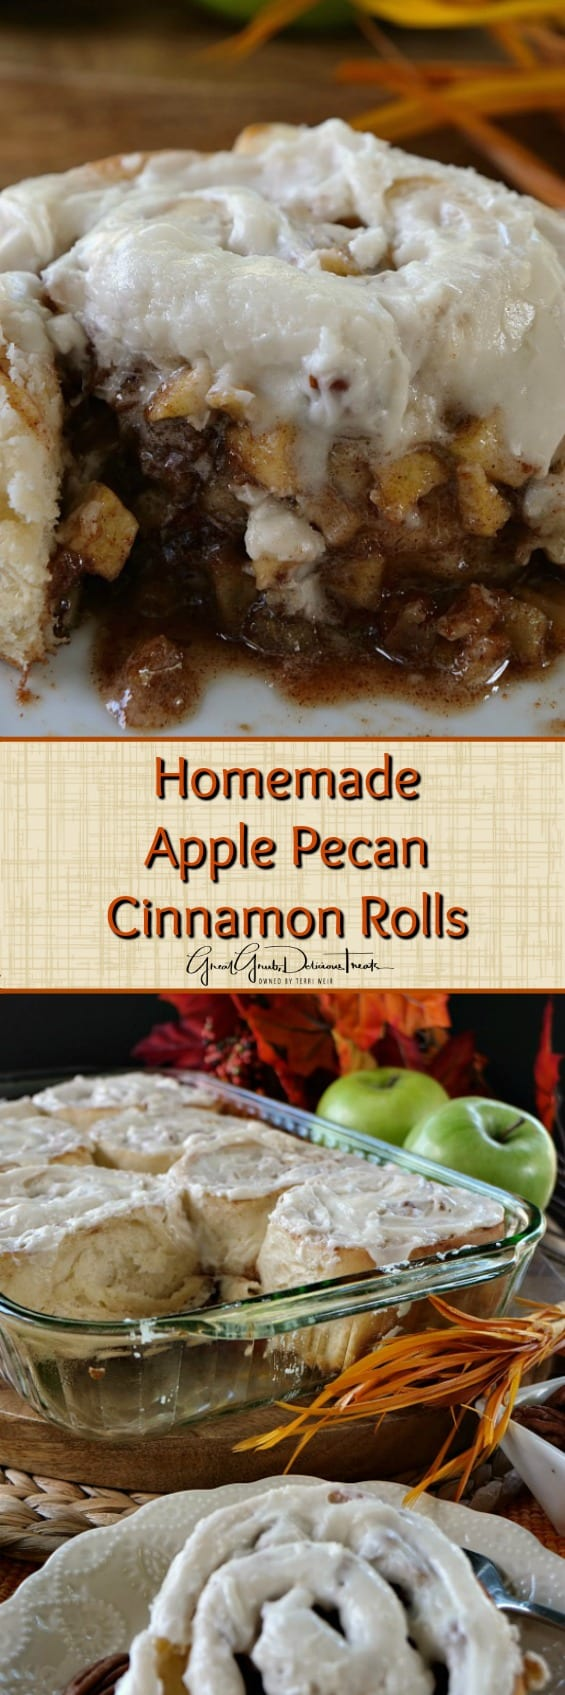 Homemade Apple Pecan Cinnamon Rolls